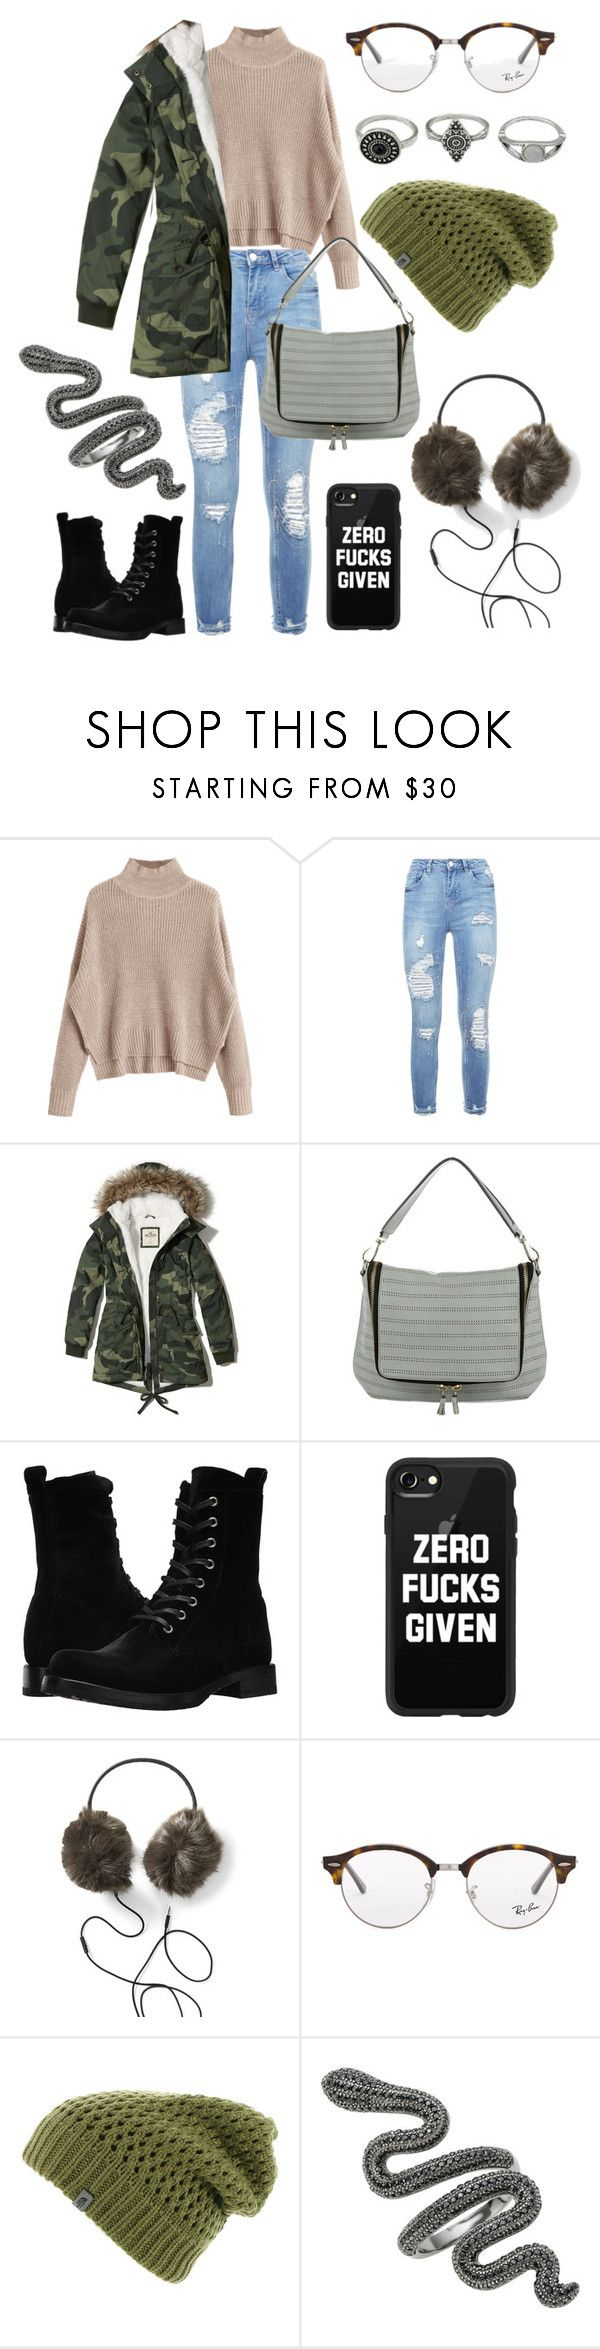 """I miss you"" by victoria-lynn-earp ❤ liked on Polyvore featuring Hollister Co., Anya Hindmarch, Frye, Casetify, Ray-Ban and The North Face"